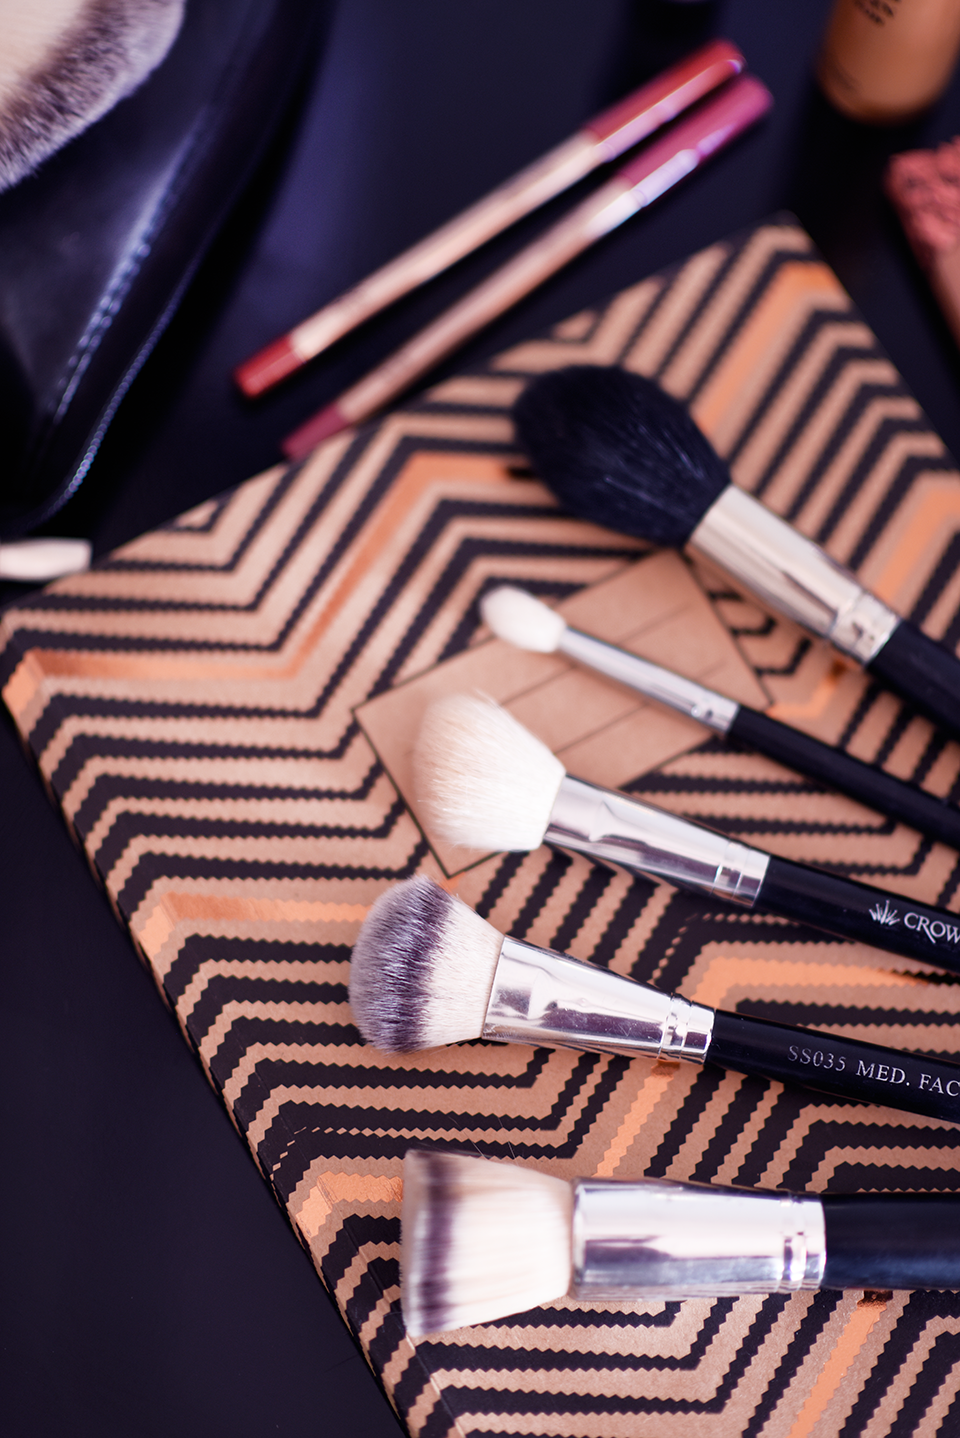 make-up-brush-essentials-crownbrush-zoe-newlove-beauty-blogger-zoe-newlove